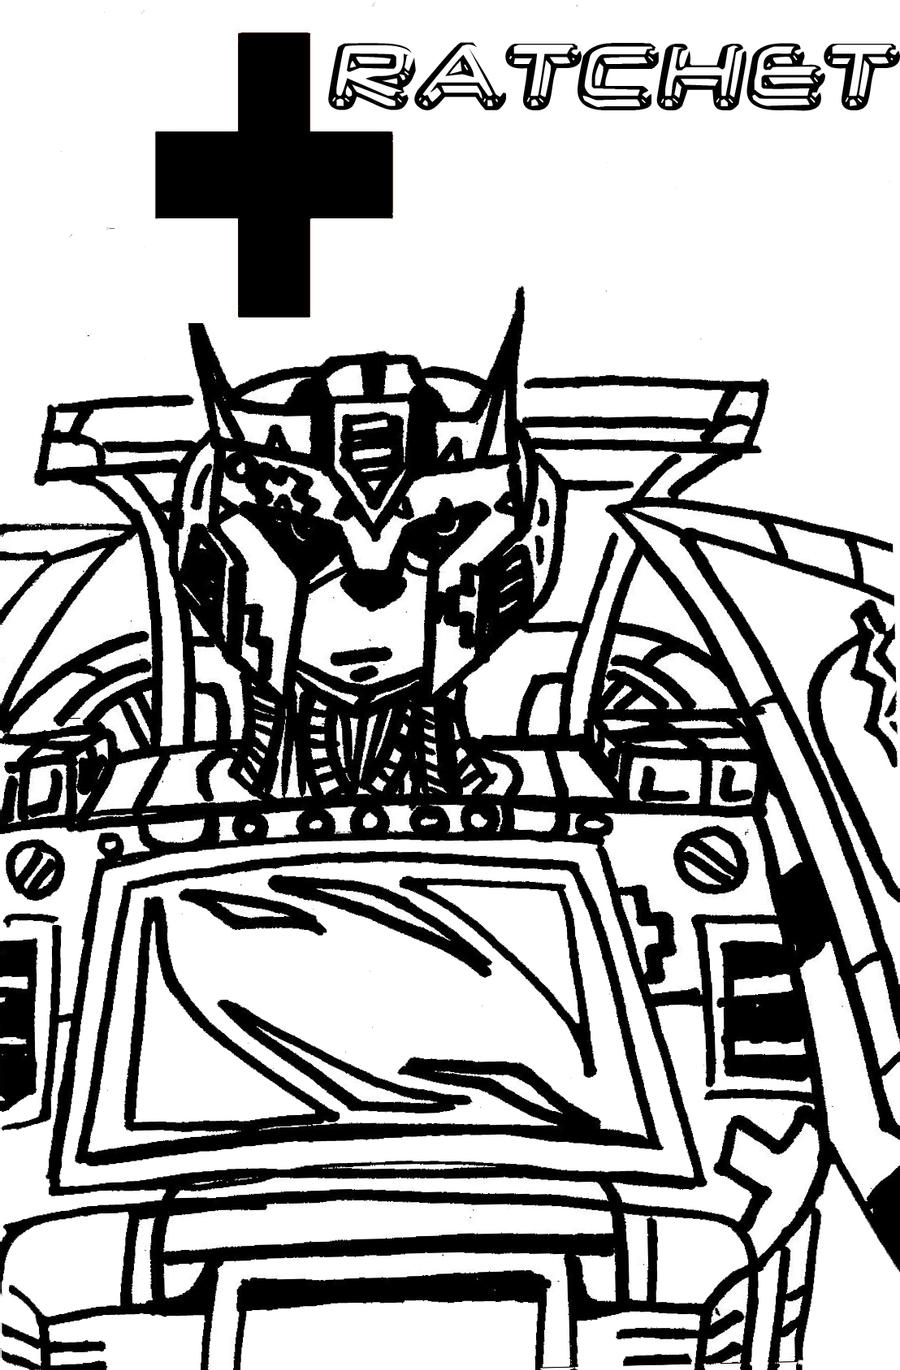 transformers ratchet coloring pages transformers ratchet coloring coloring pages ratchet coloring pages transformers